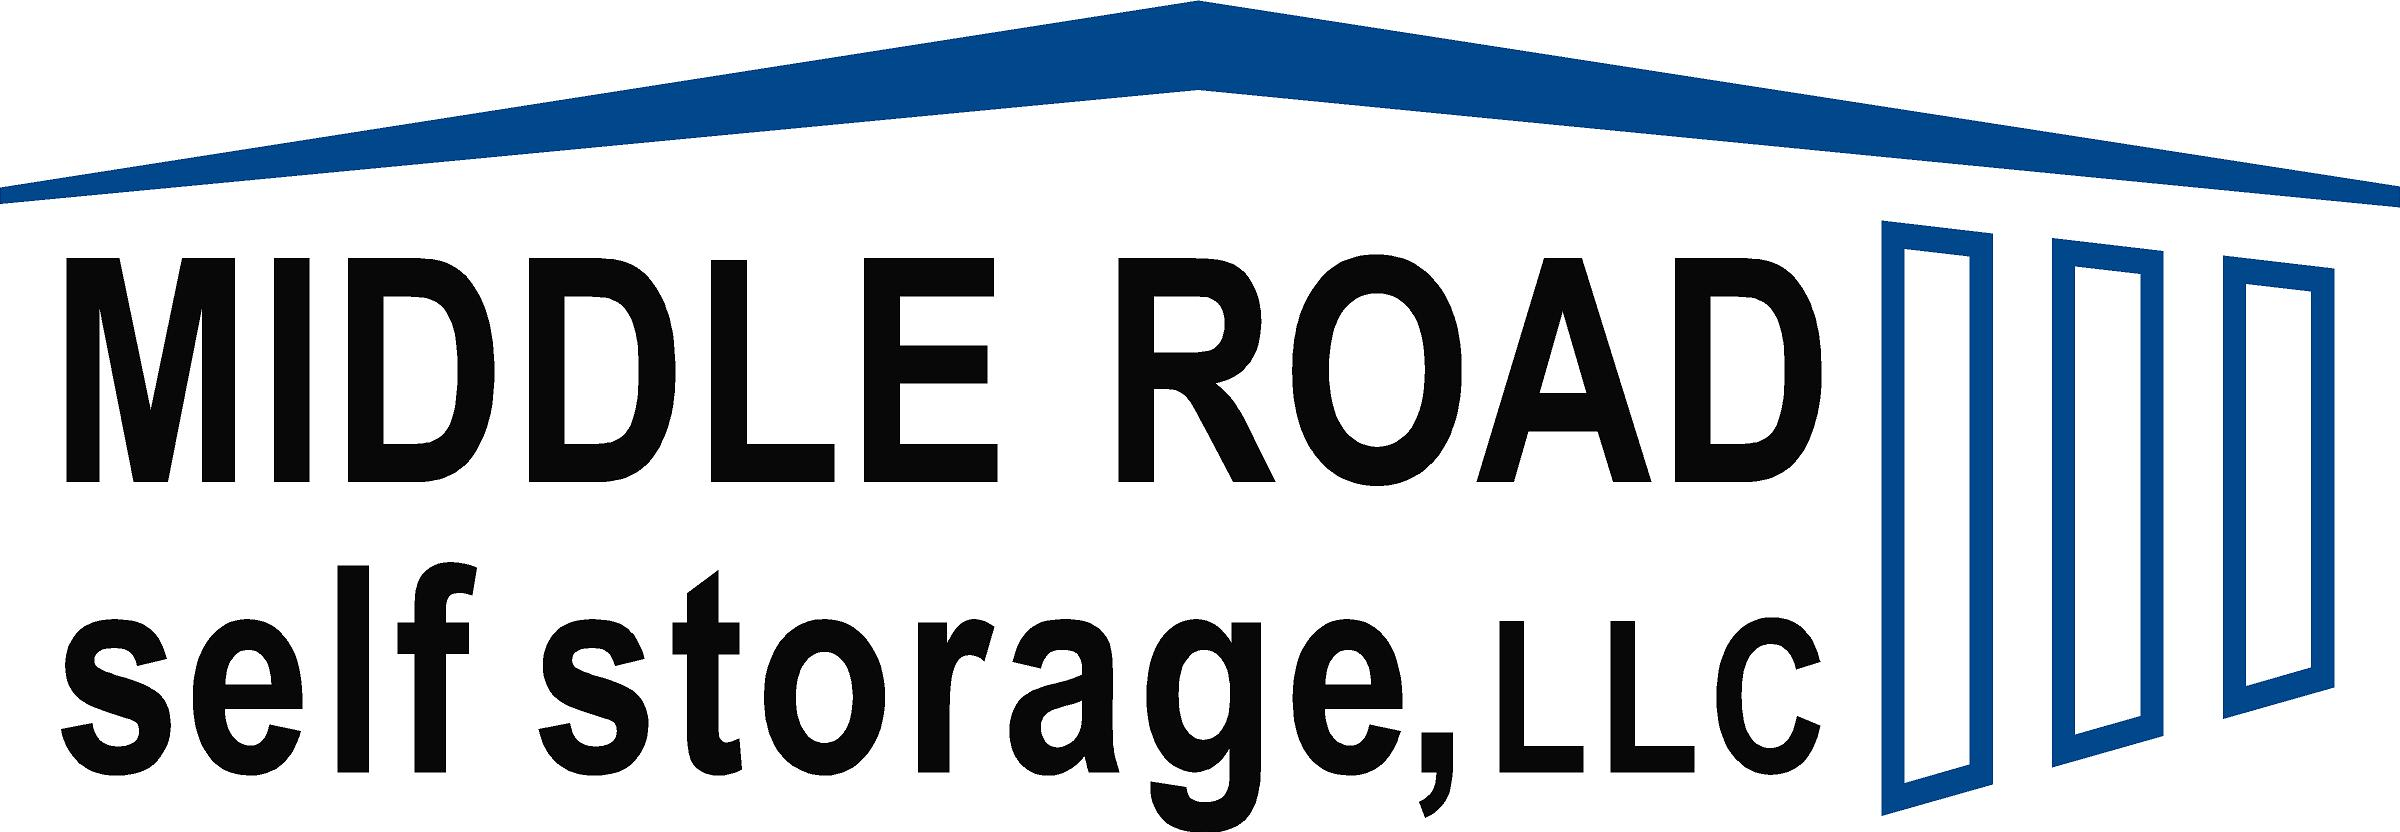 Middle Road Self Storage, LLC